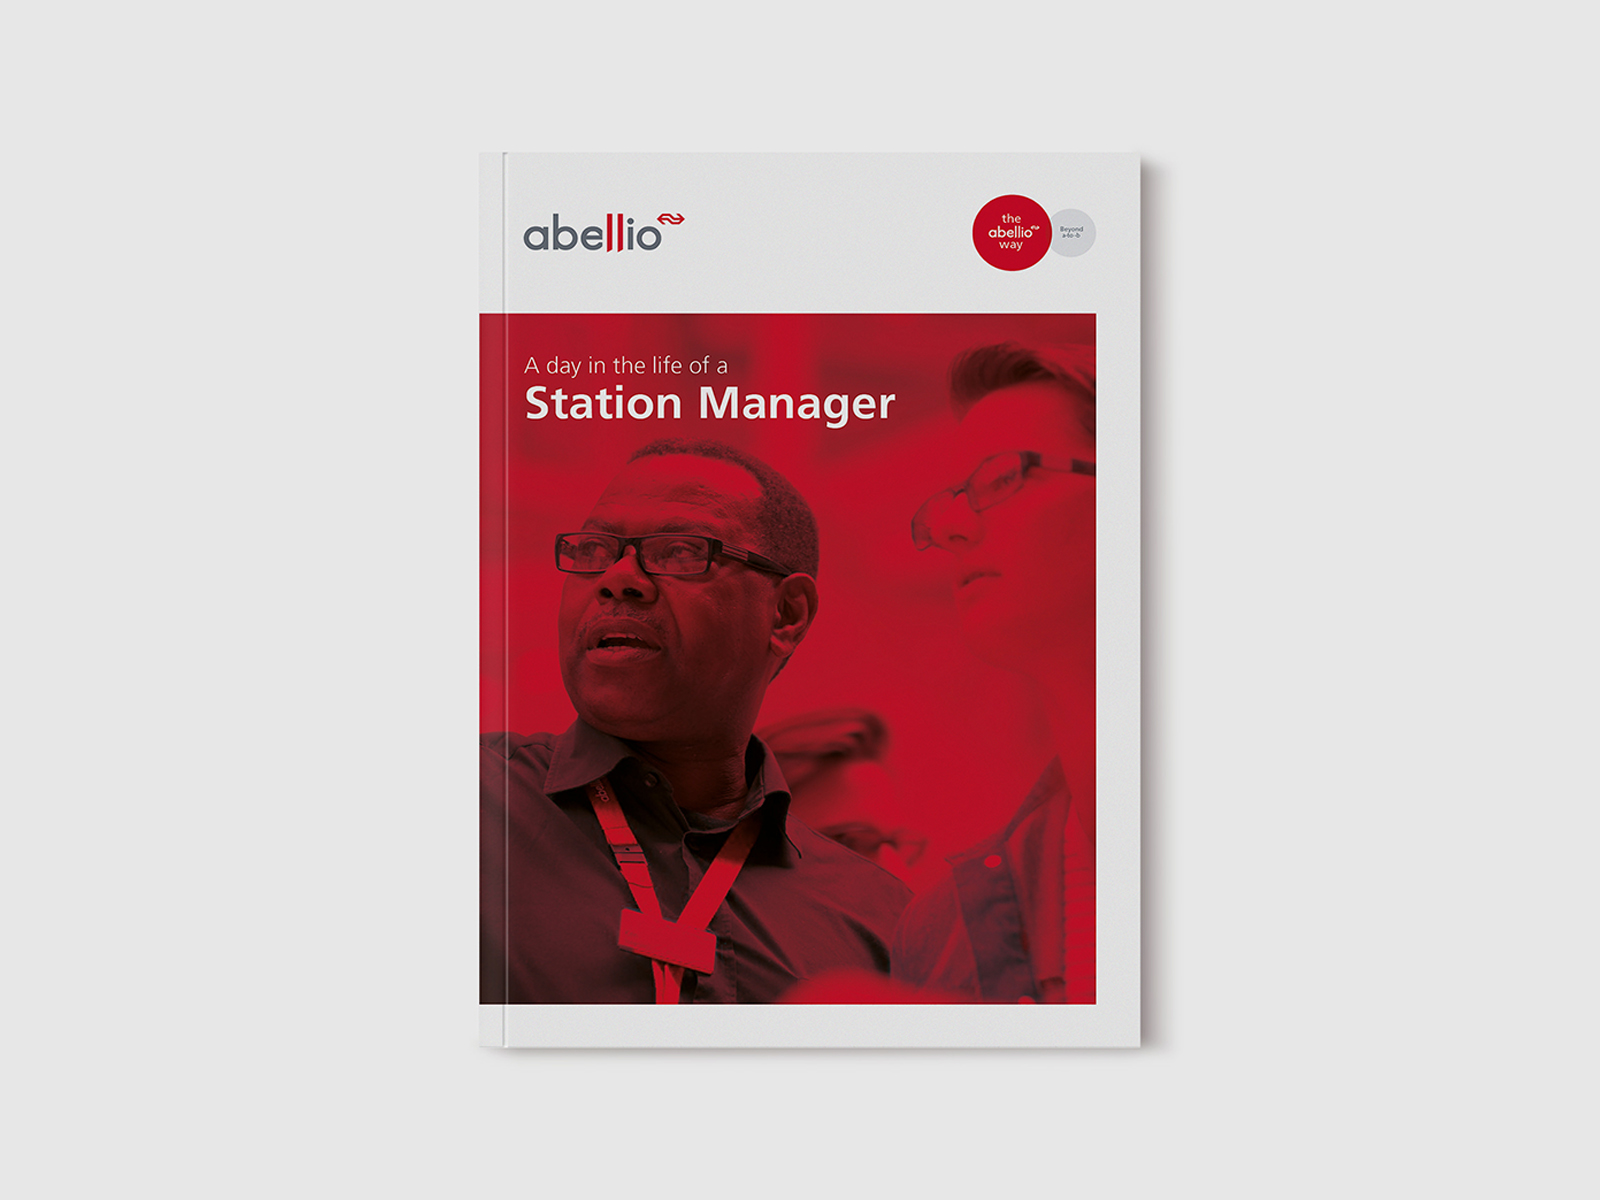 Abellio - A Day In The Life Guide